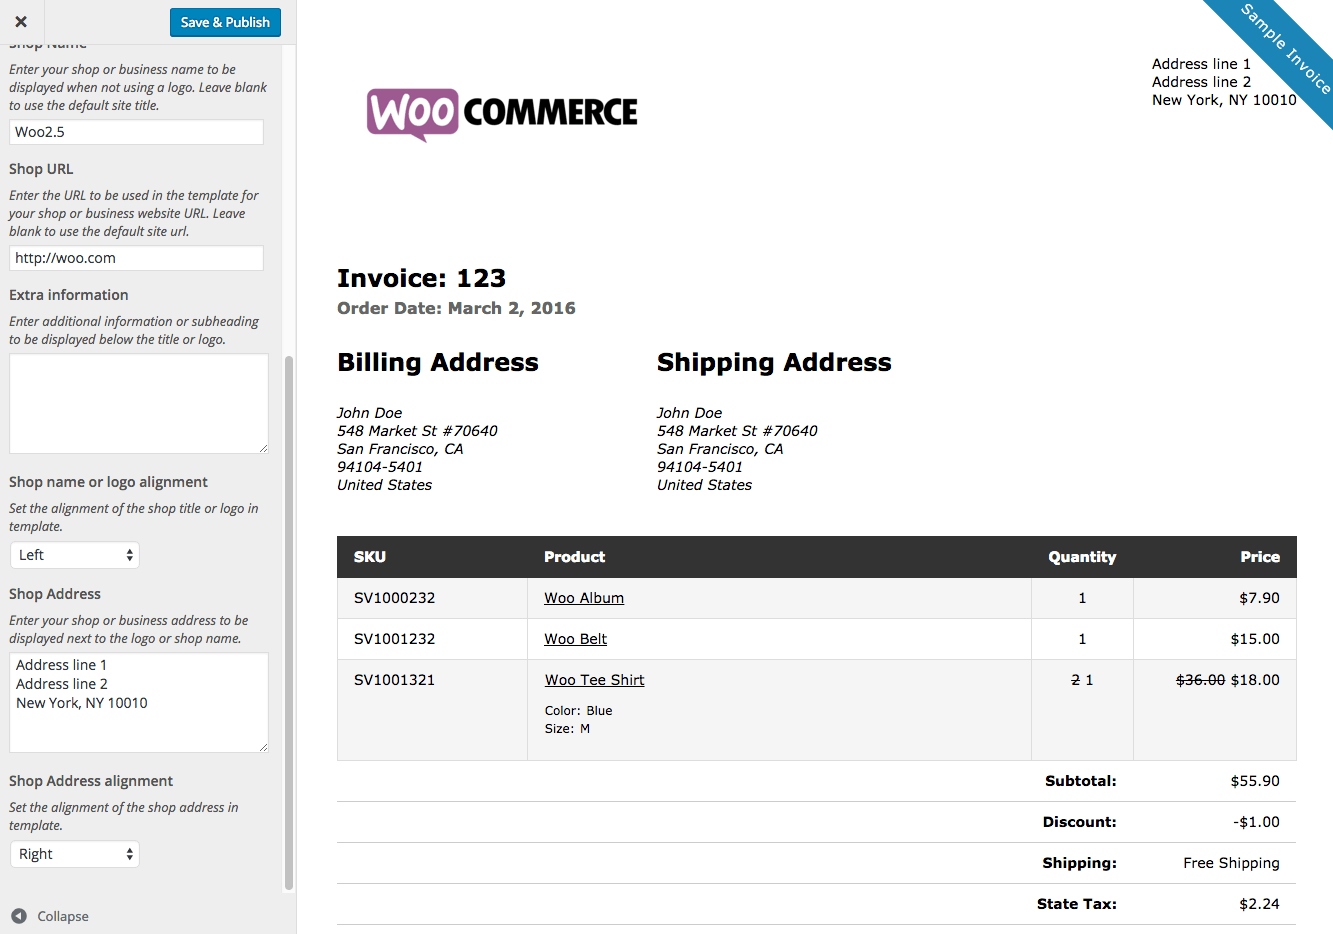 Floobydustus  Picturesque Print Invoices Amp Packing Lists  Woocommerce With Magnificent Woocommerce Print Invoices  Packing Lists Customizer With Divine Medical Invoice Template Free Also Sample Construction Invoice Template In Addition Mechanic Shop Invoice Templates And Commercial Invoice Form Pdf As Well As Reminder Letter For An Outstanding Invoice Payment Additionally Billing Invoice Samples From Woocommercecom With Floobydustus  Magnificent Print Invoices Amp Packing Lists  Woocommerce With Divine Woocommerce Print Invoices  Packing Lists Customizer And Picturesque Medical Invoice Template Free Also Sample Construction Invoice Template In Addition Mechanic Shop Invoice Templates From Woocommercecom